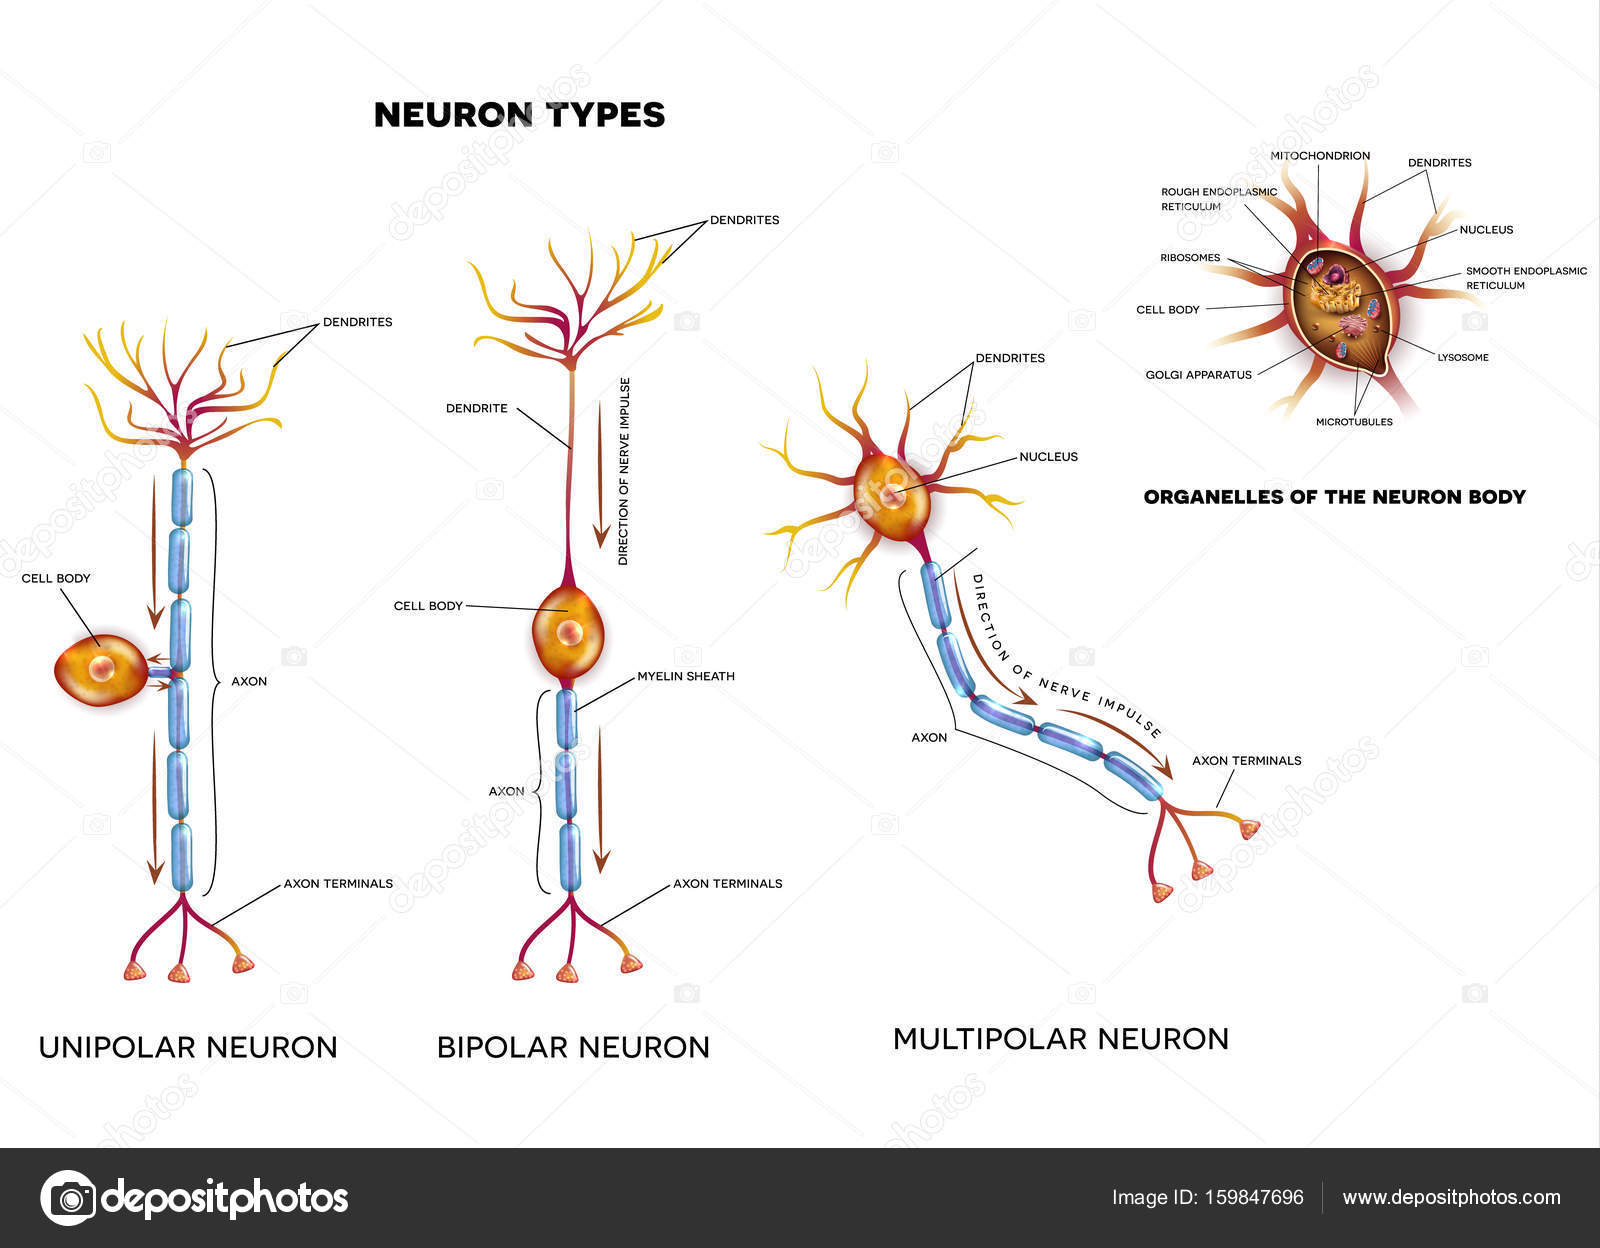 Nerve cell types and organelles stock vector megija 159847696 nerve cell types and organelles of the cell body close up detailed anatomy illustration vector by megija ccuart Image collections